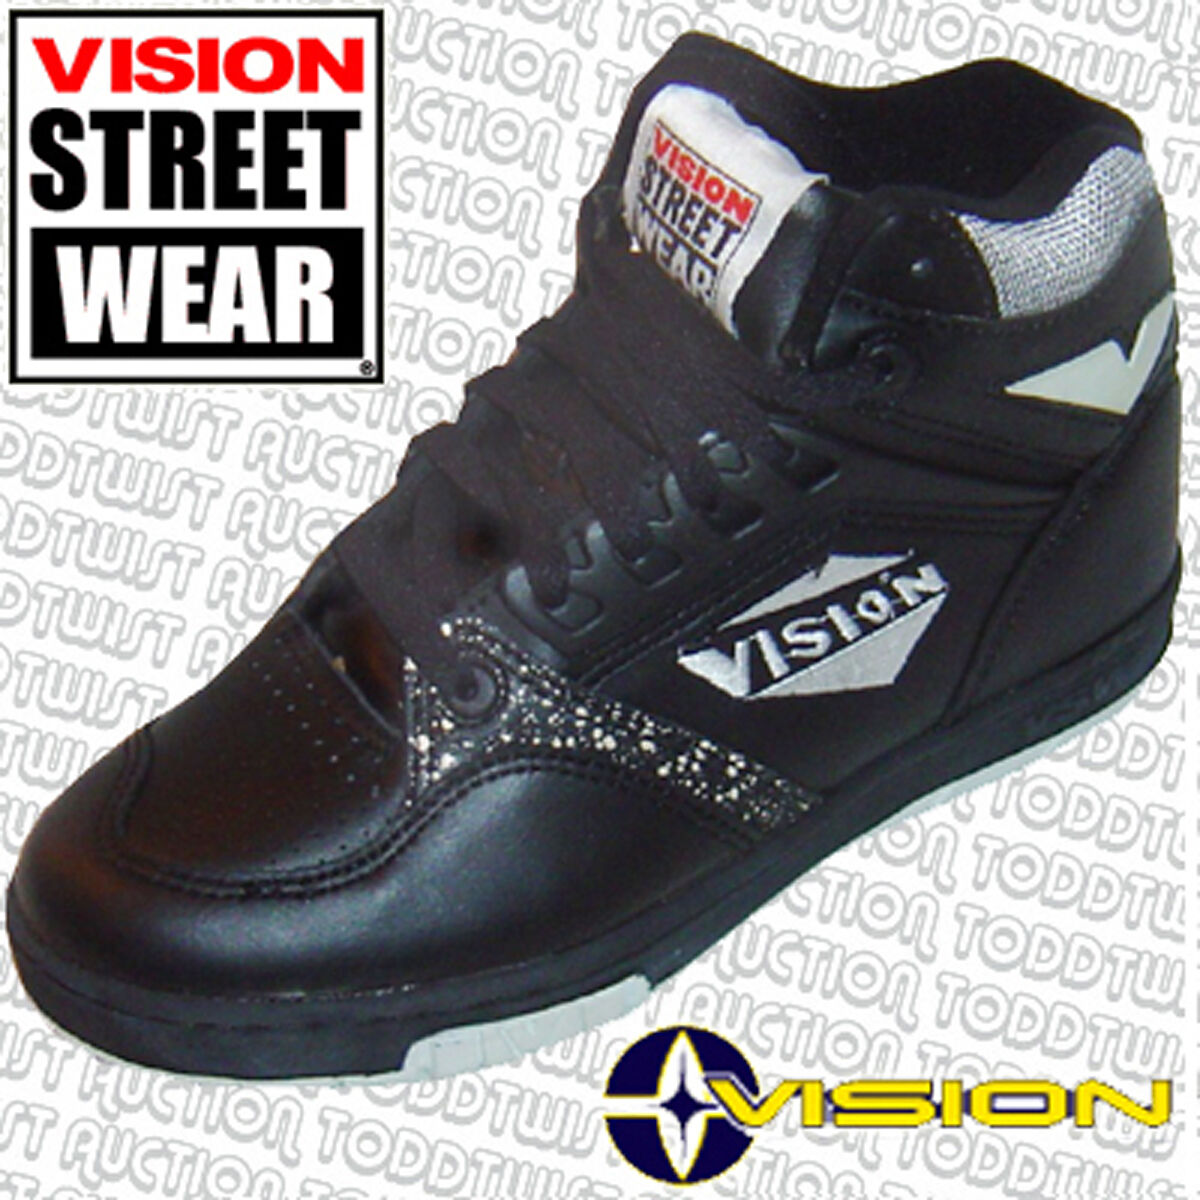 VISION STREET WEAR ms17000 Skateboard Schuhe - UK Original 7/ USA 8 - Original UK '80s Jahre 017b58